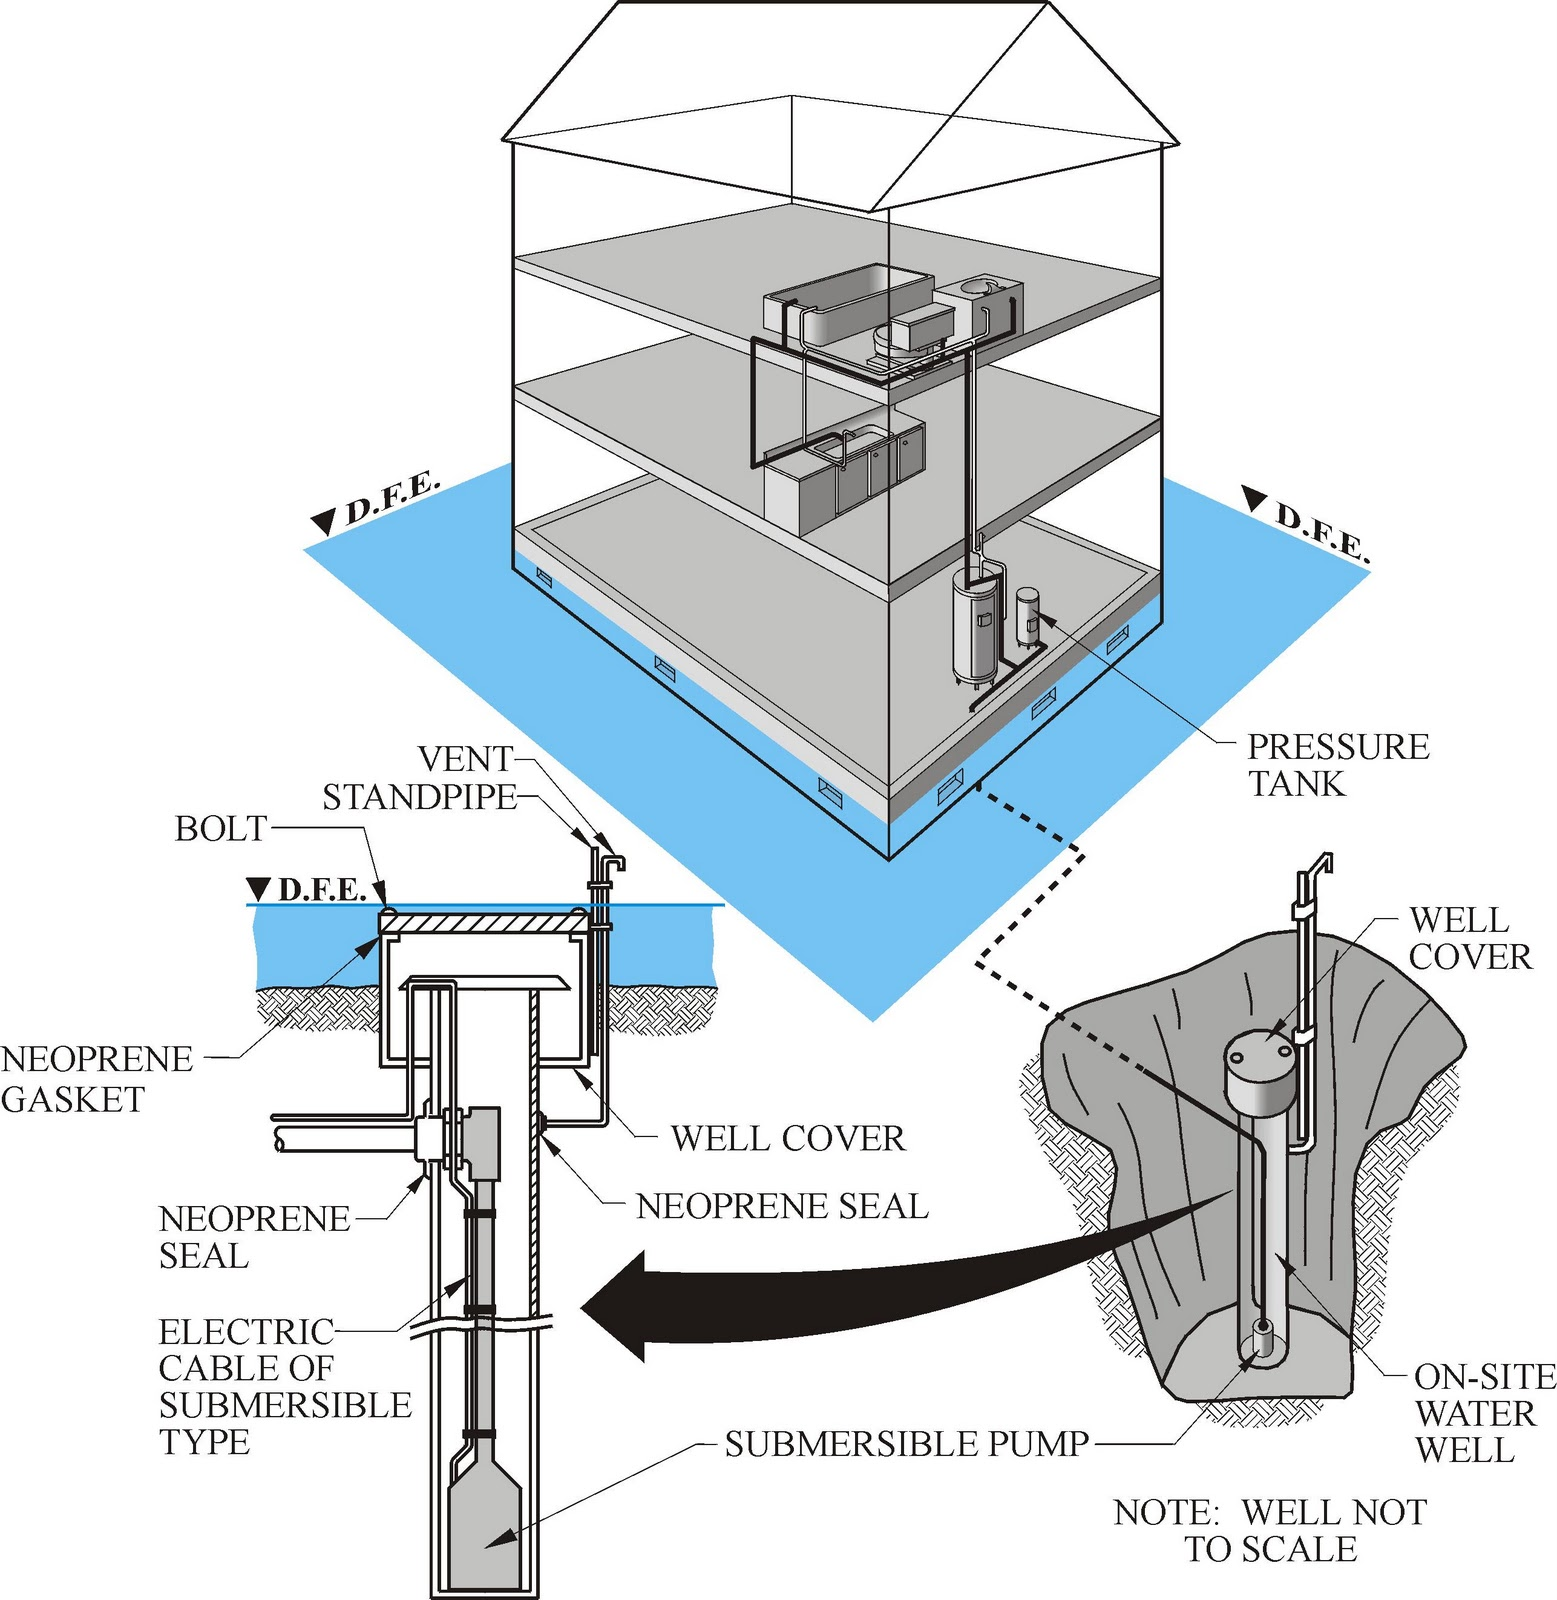 Nfip Requirements For Water Supplies To Buildings